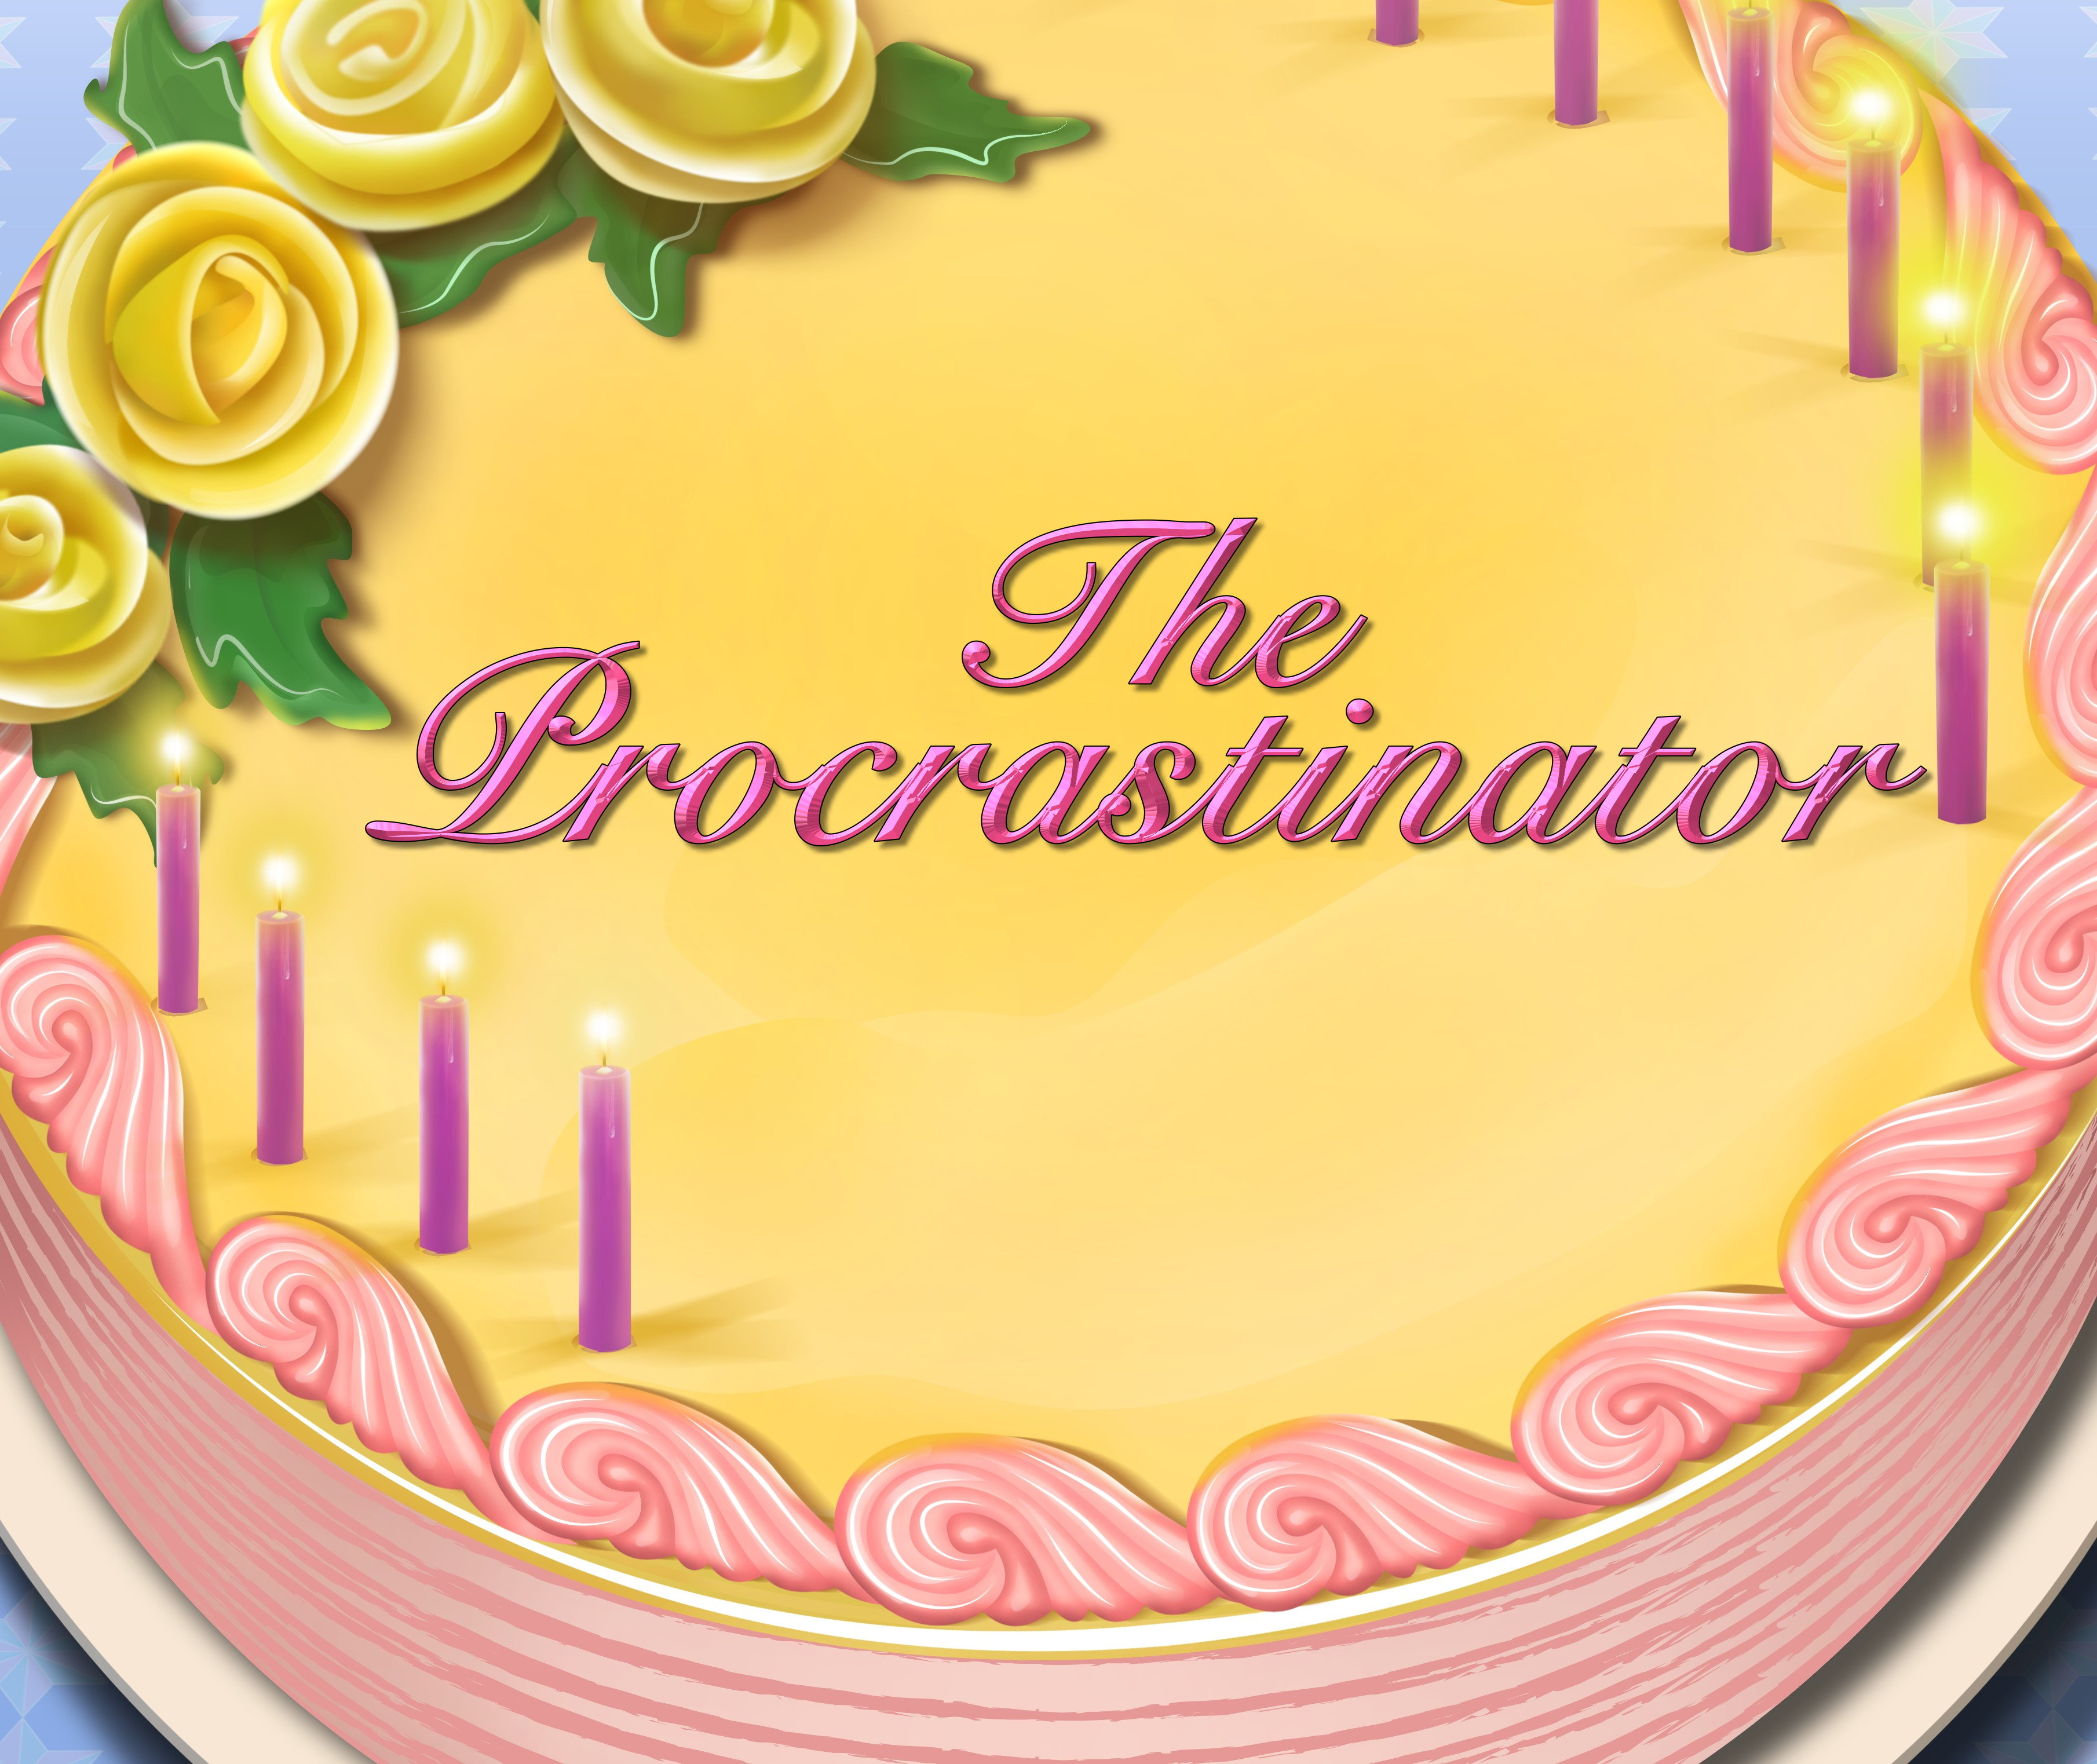 The Procrastinator Birthday Cake